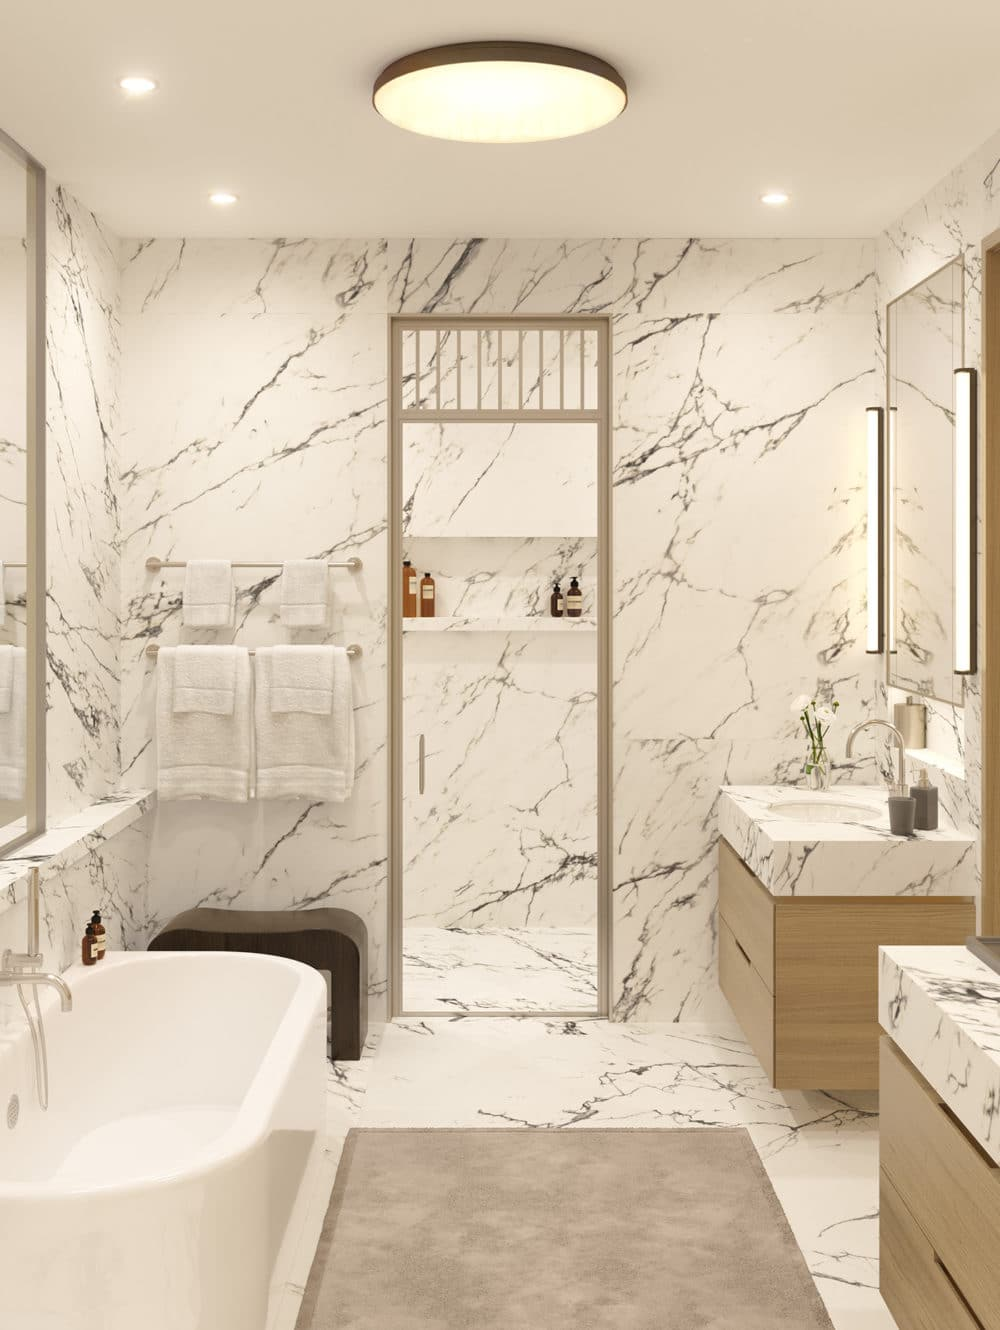 Interior view of 67 Vestry residence master bathroom in New York City. Has marble walls, counters and floors.